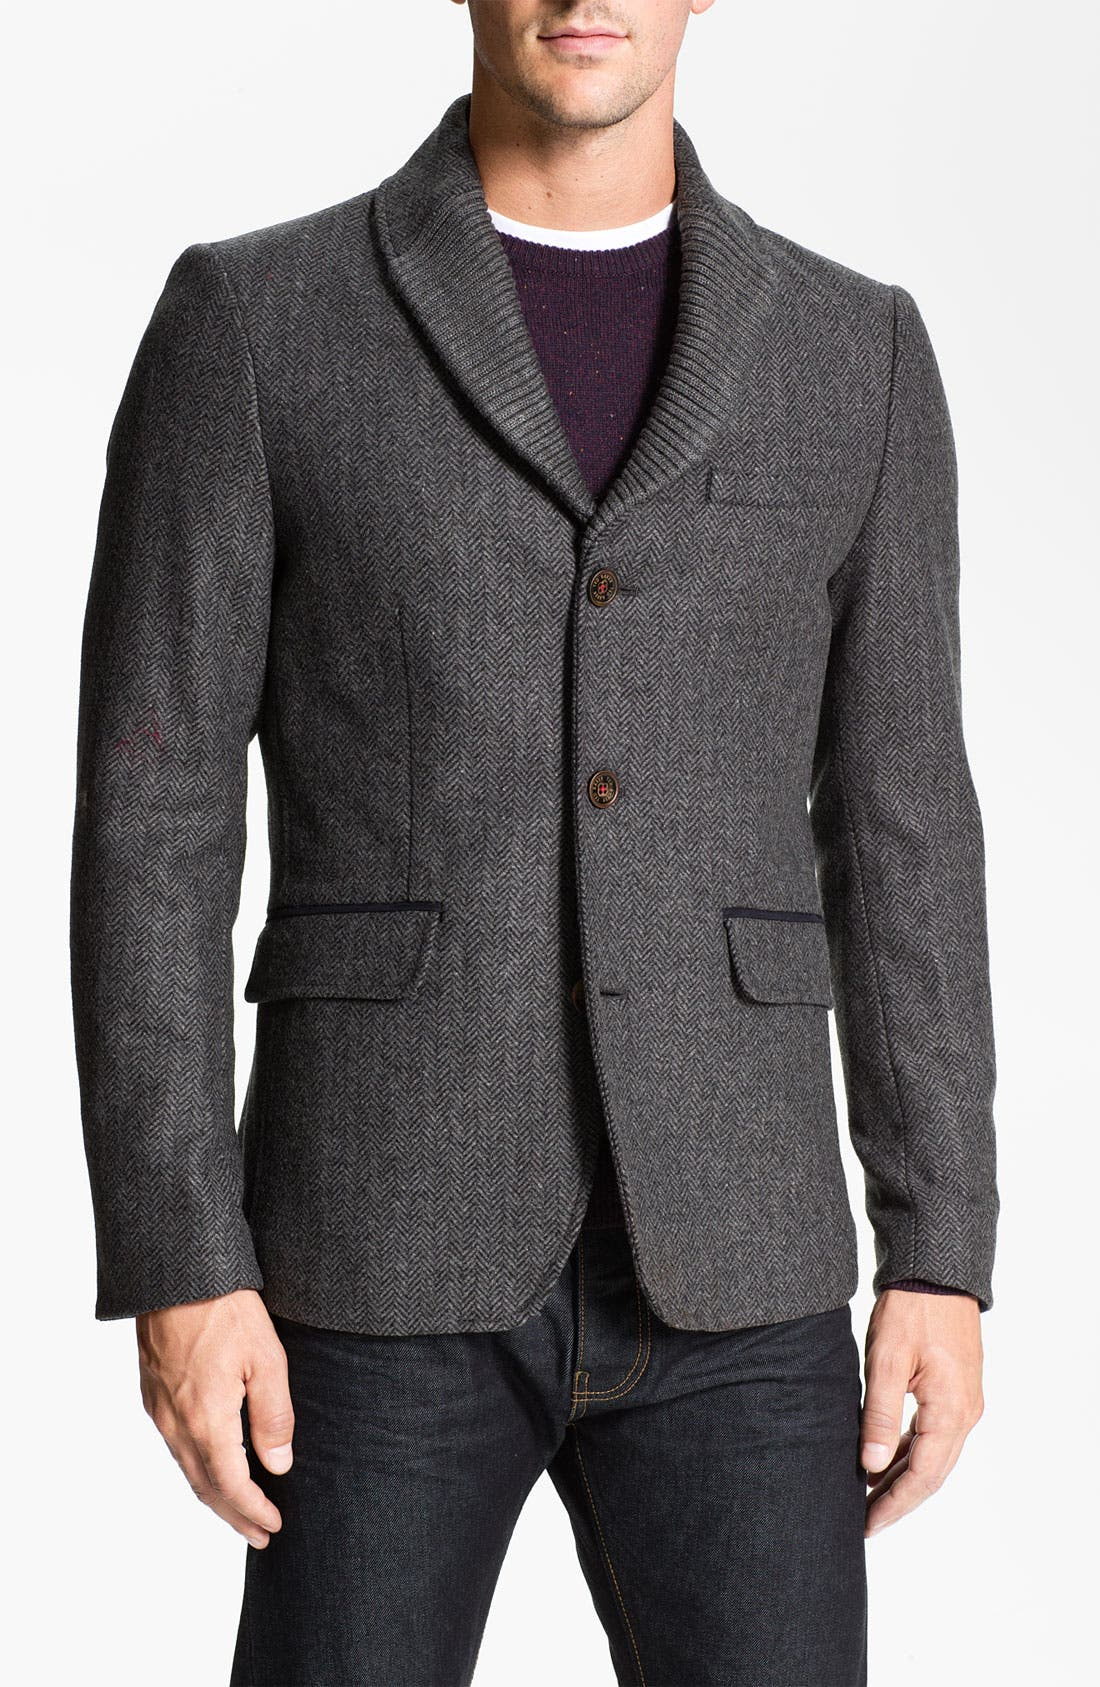 'Ananic' Shawl Collar Wool Blend Blazer,                             Main thumbnail 1, color,                             020